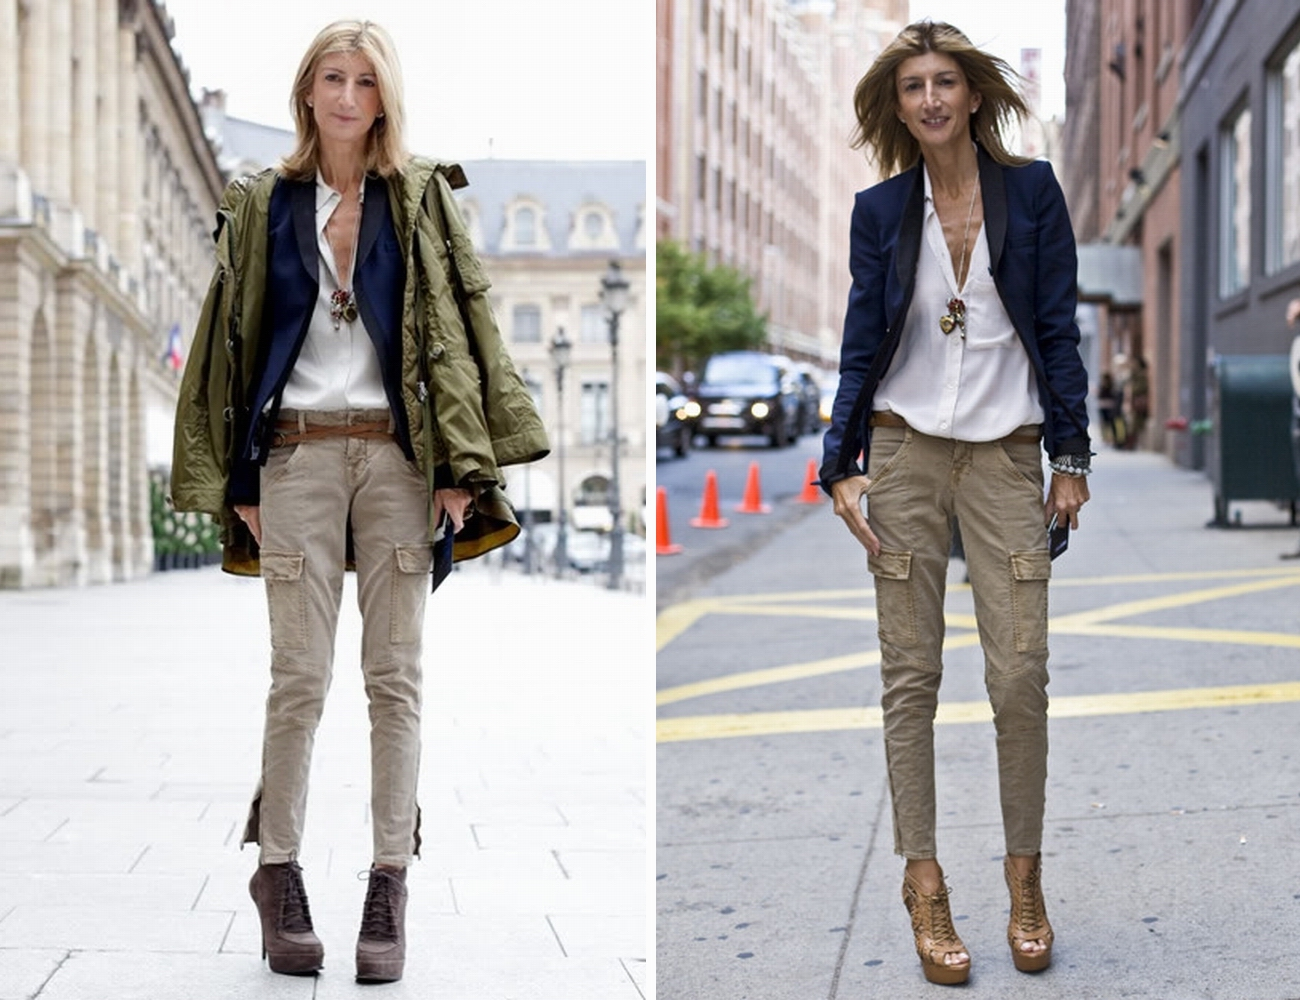 THE FASHION PACK: SARAH RUTSON - My Daily Style